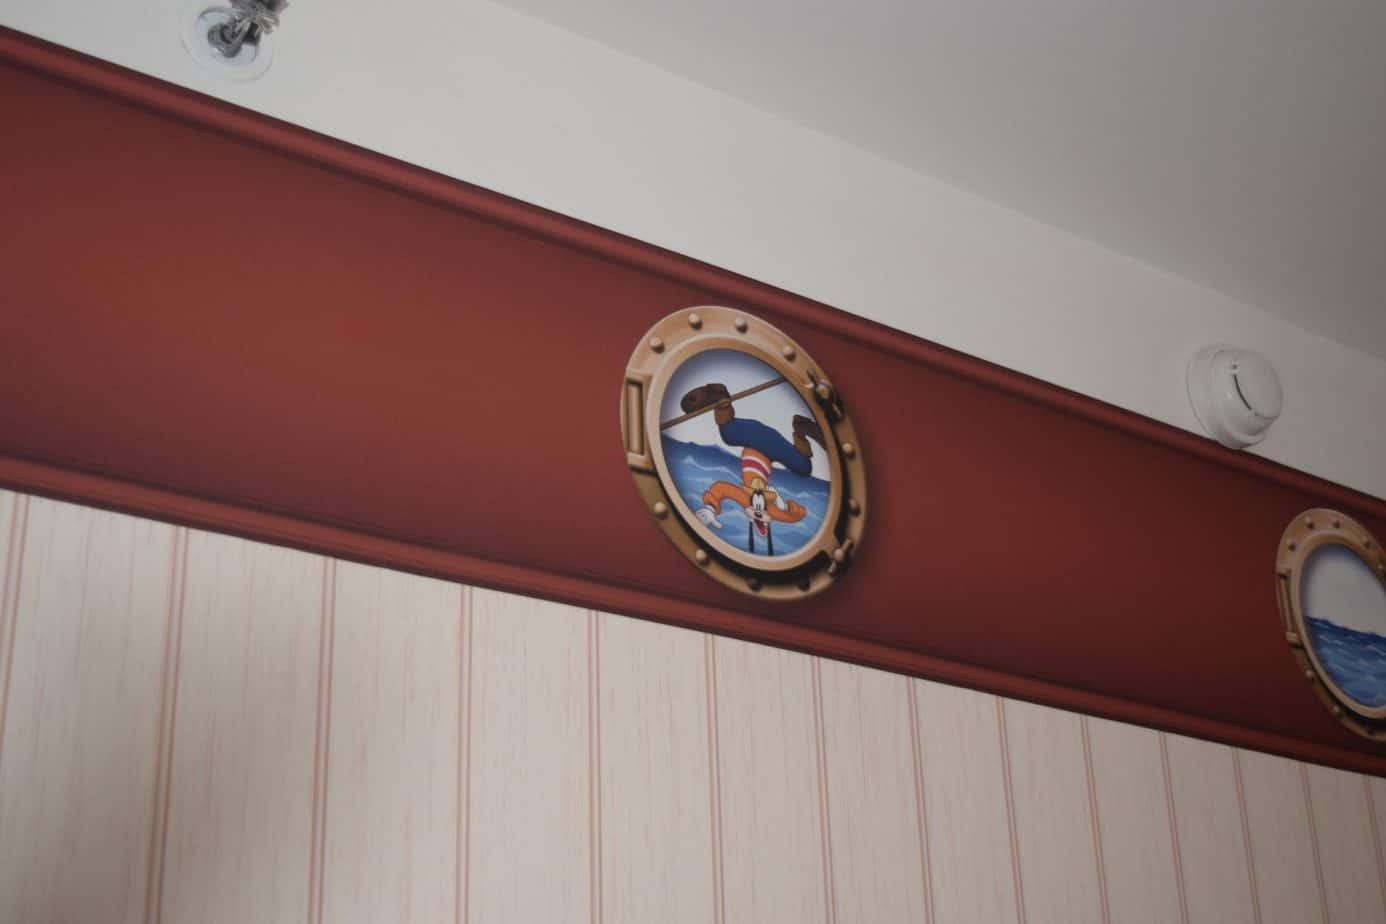 The wallpaper in a standard room at Newport Bay hotel is nautical themed featuring some of the disney characters